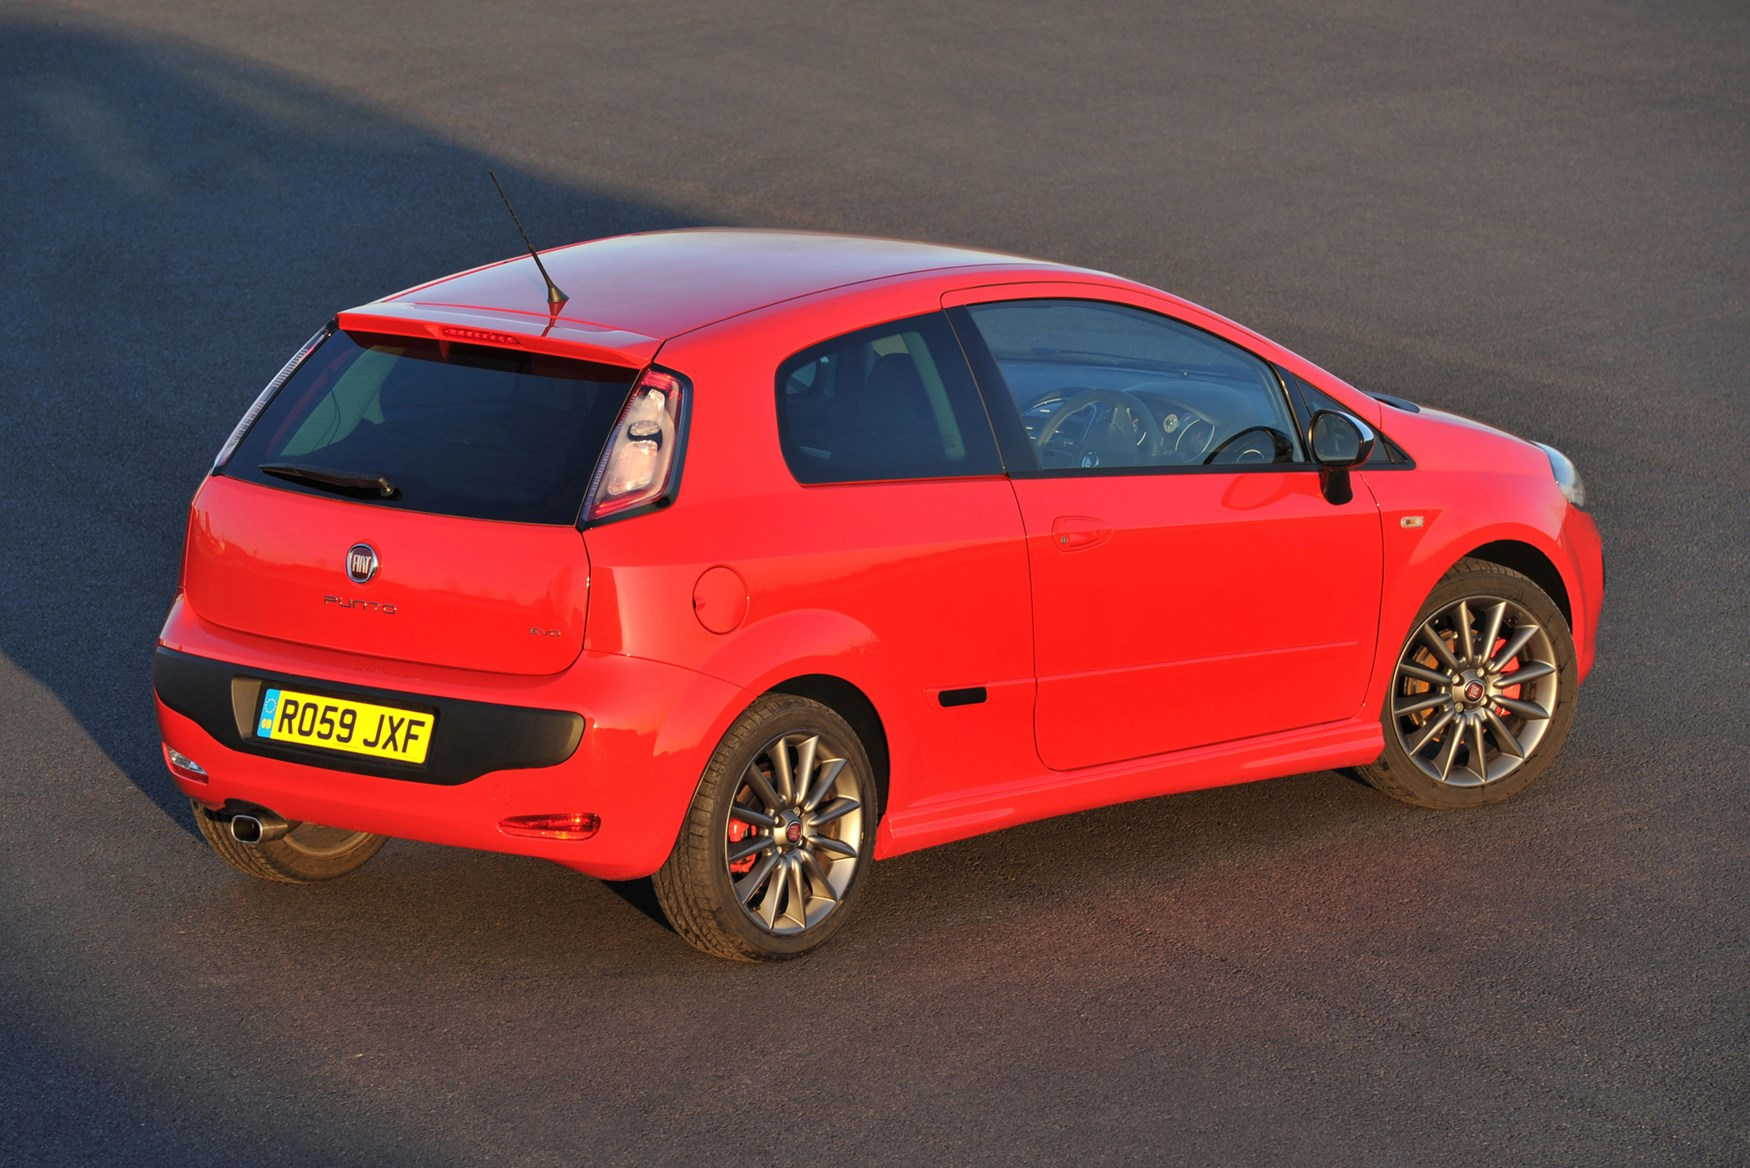 Fiat Punto Evo Hatchback 2010 2012 Features Equipment And Quibo 300 Wiring Diagram Accessories Parkers